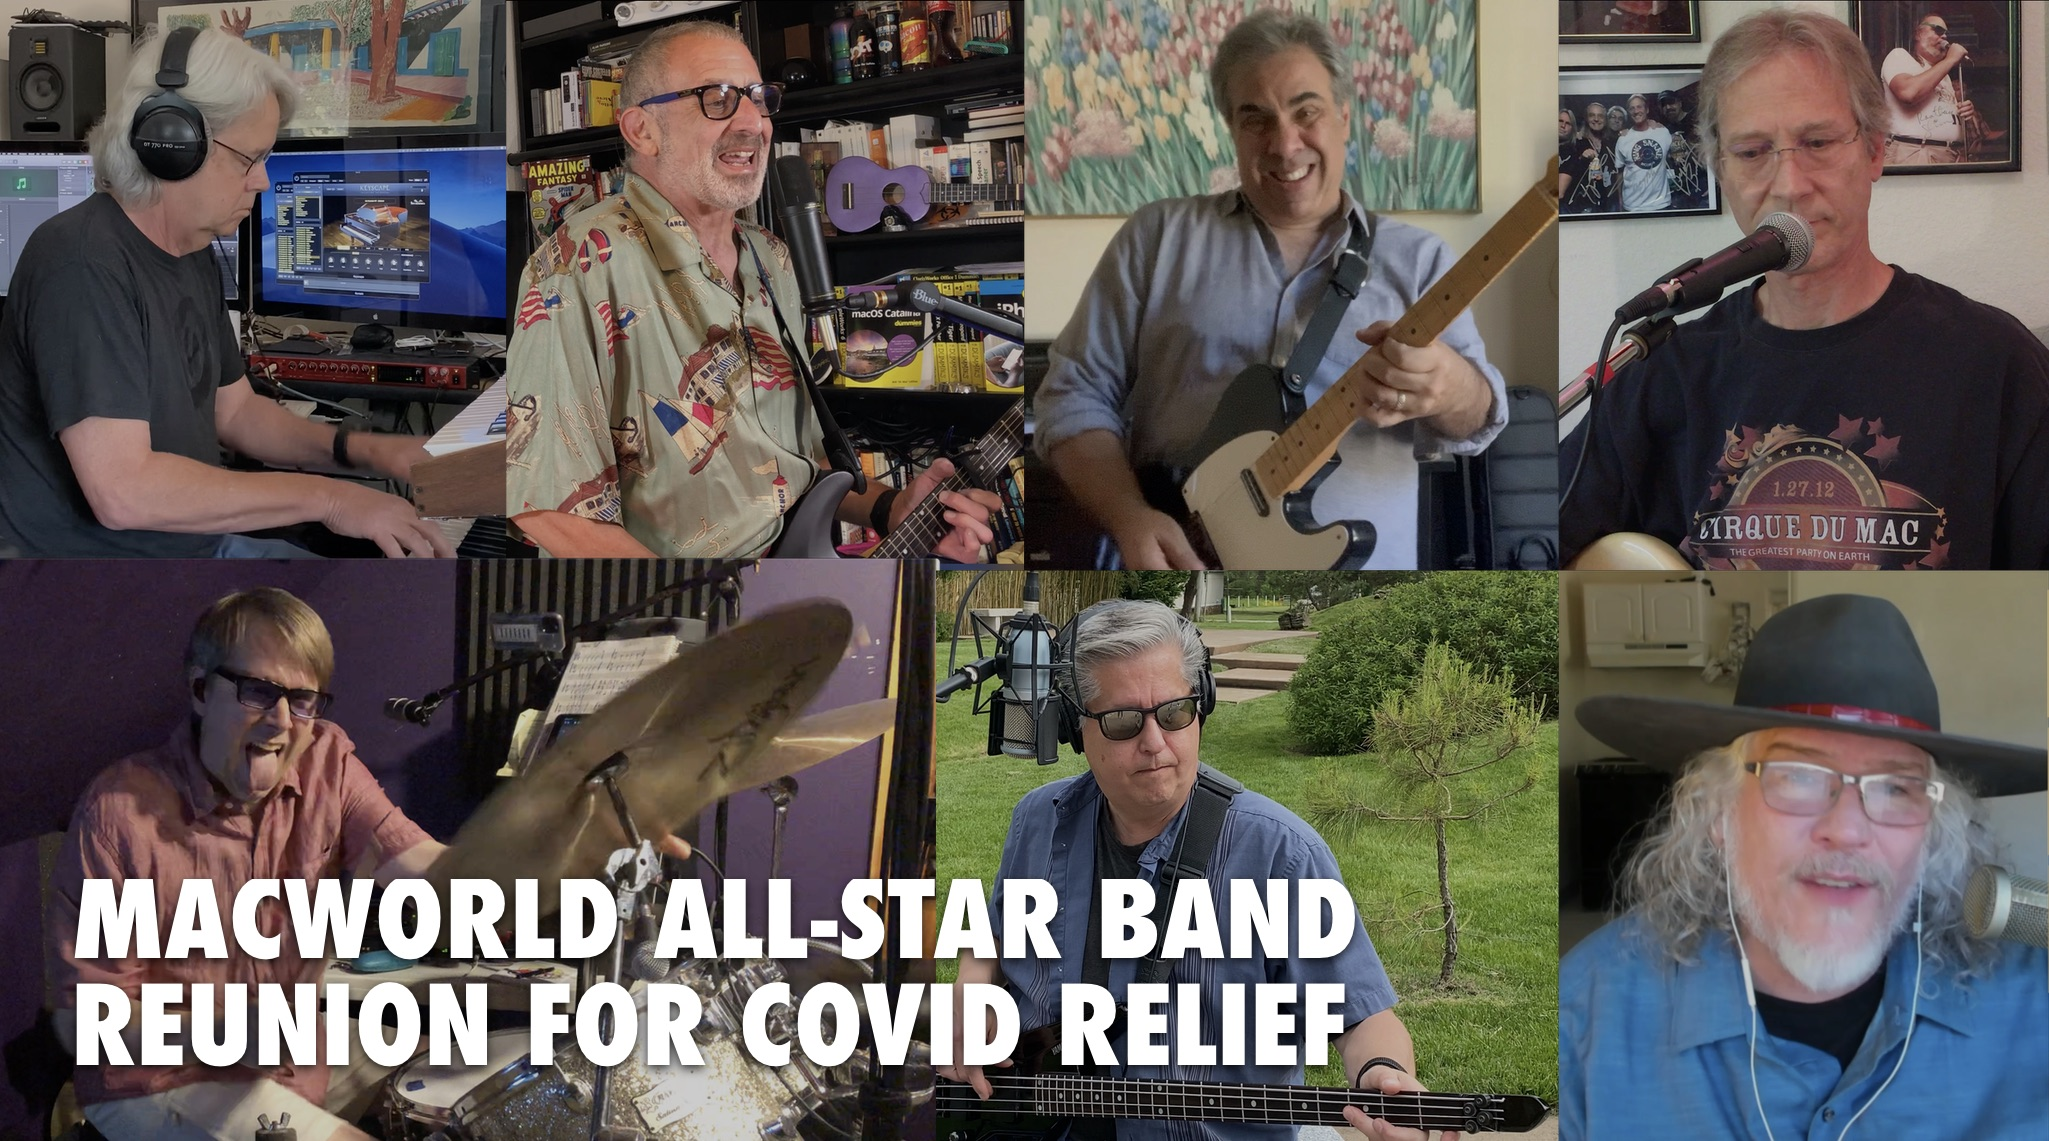 Thumbnails of the Macworld All-Star Band, reuniting during the pandemic